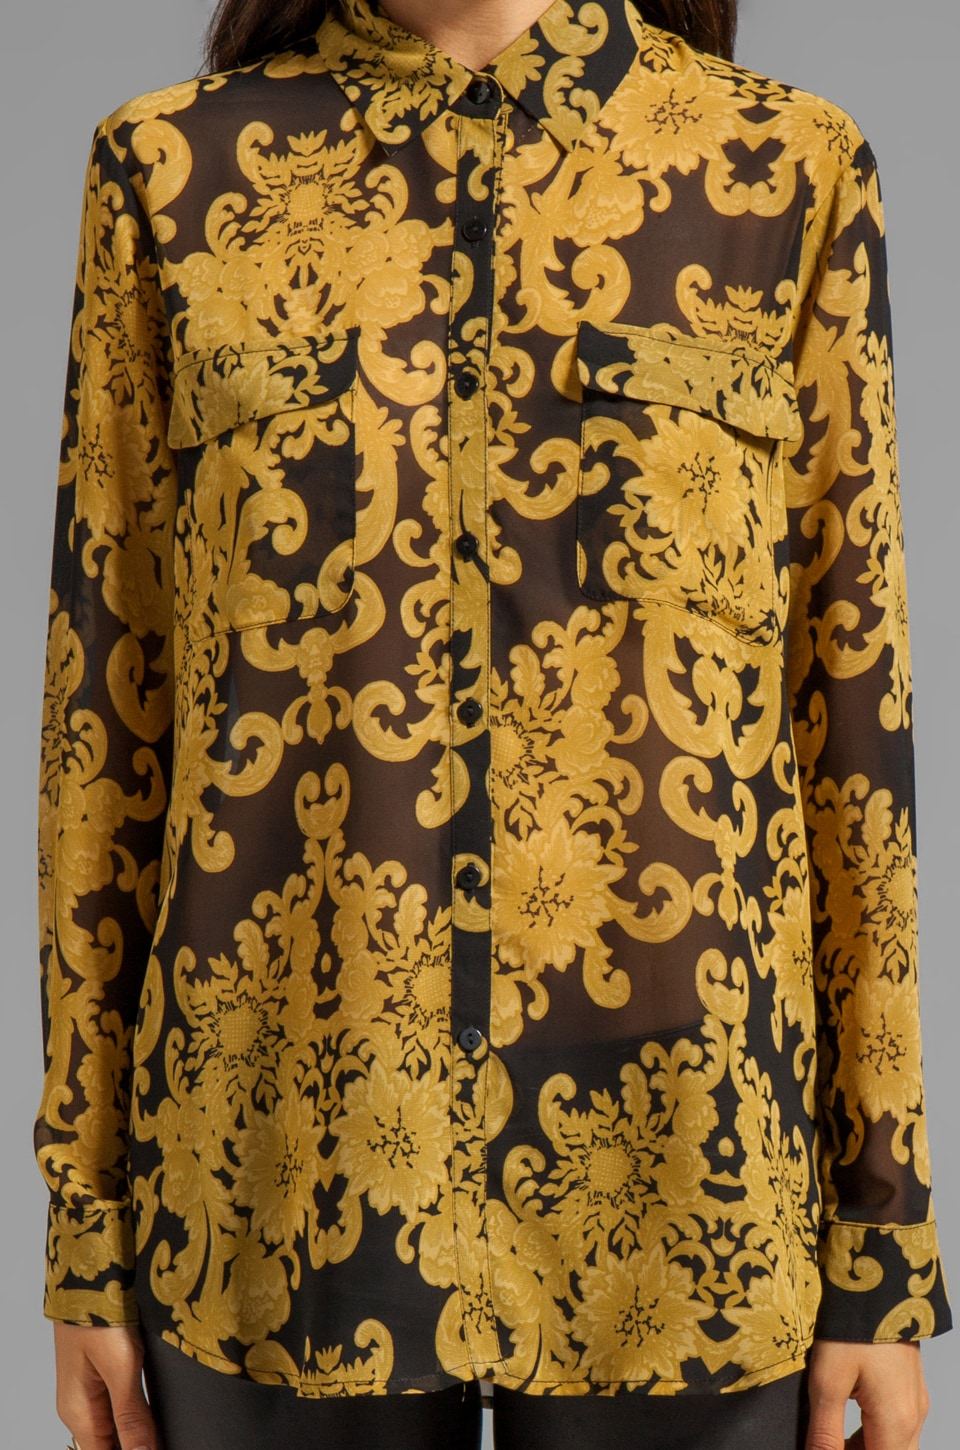 BB Dakota Edith Brocade Printed Chiffon Blouse in Black